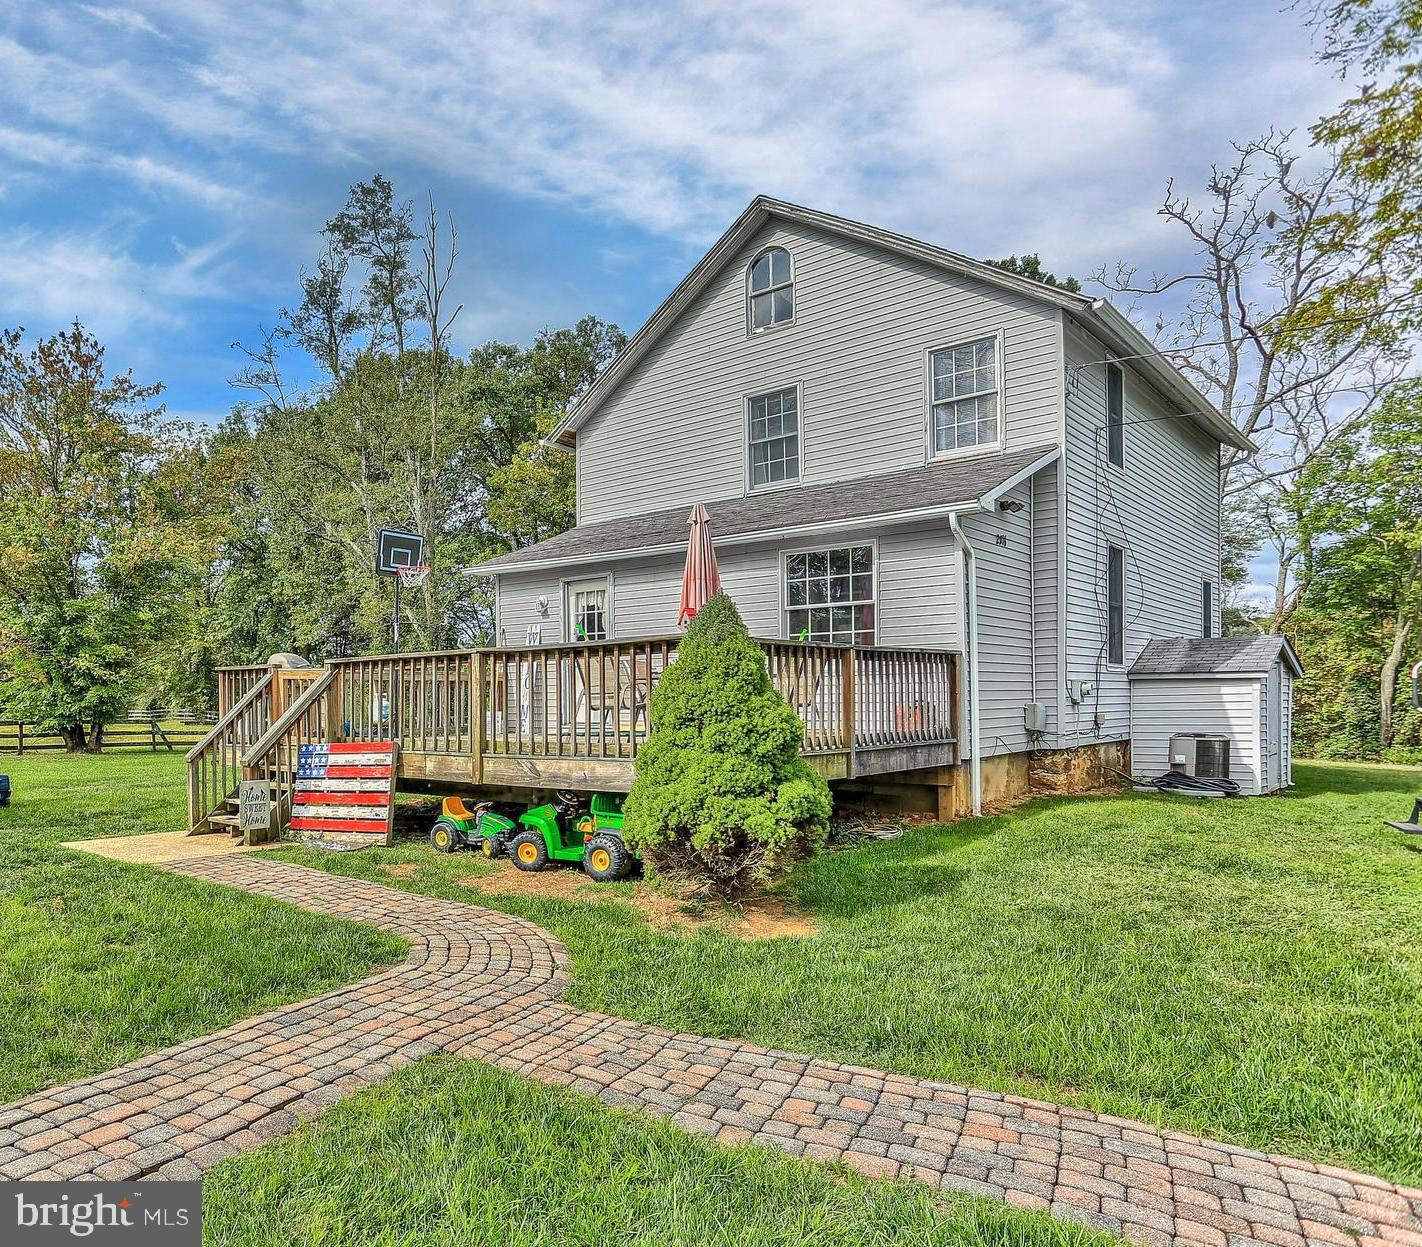 Old world charm with modern conveniences. This home boasts many updates but has kept that country ap